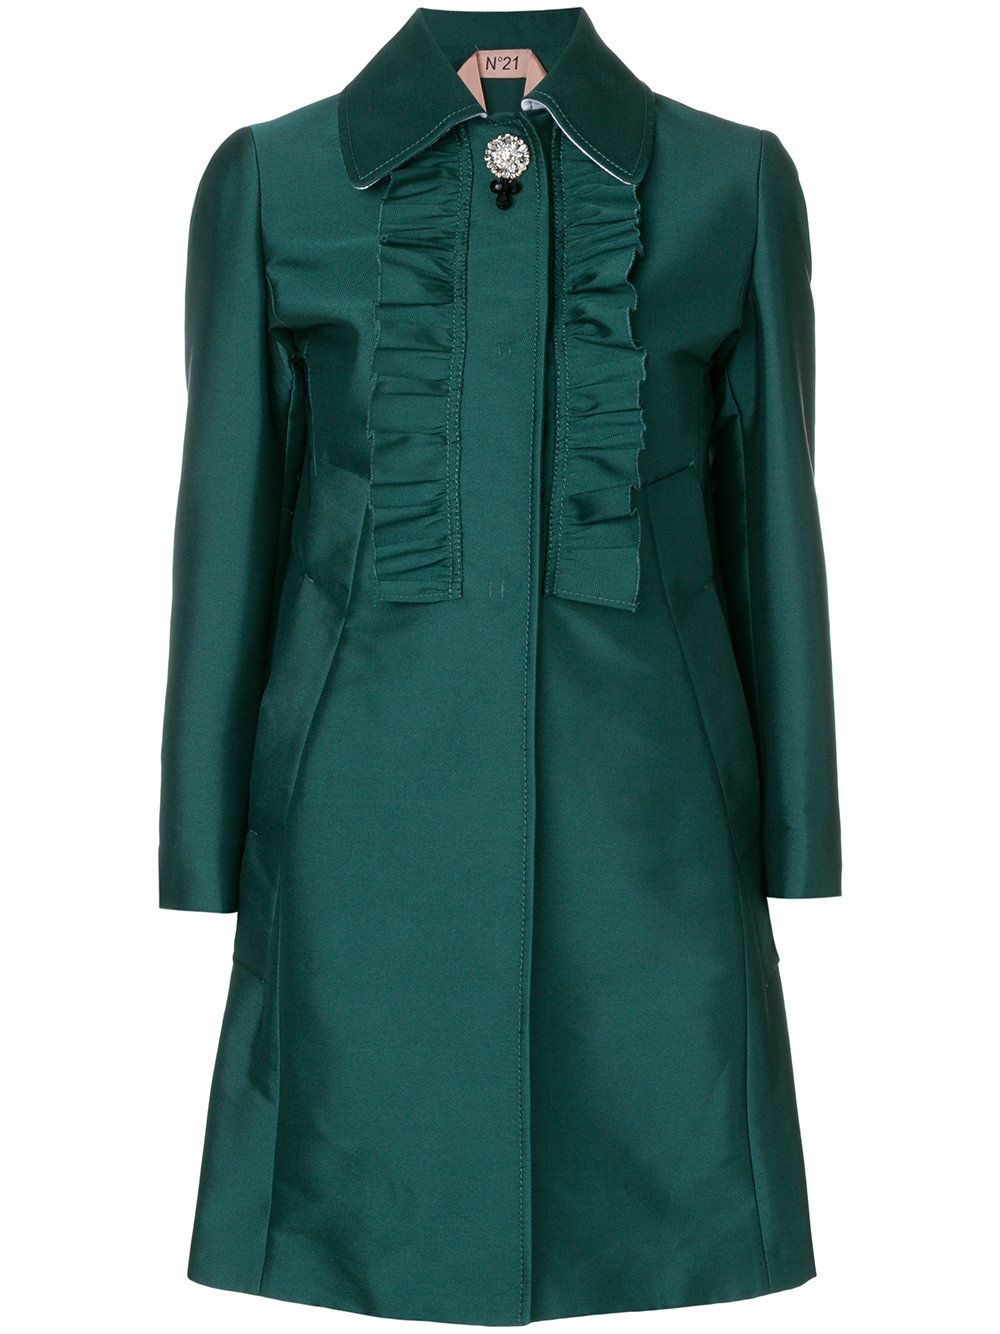 N21 ruffle panel coat